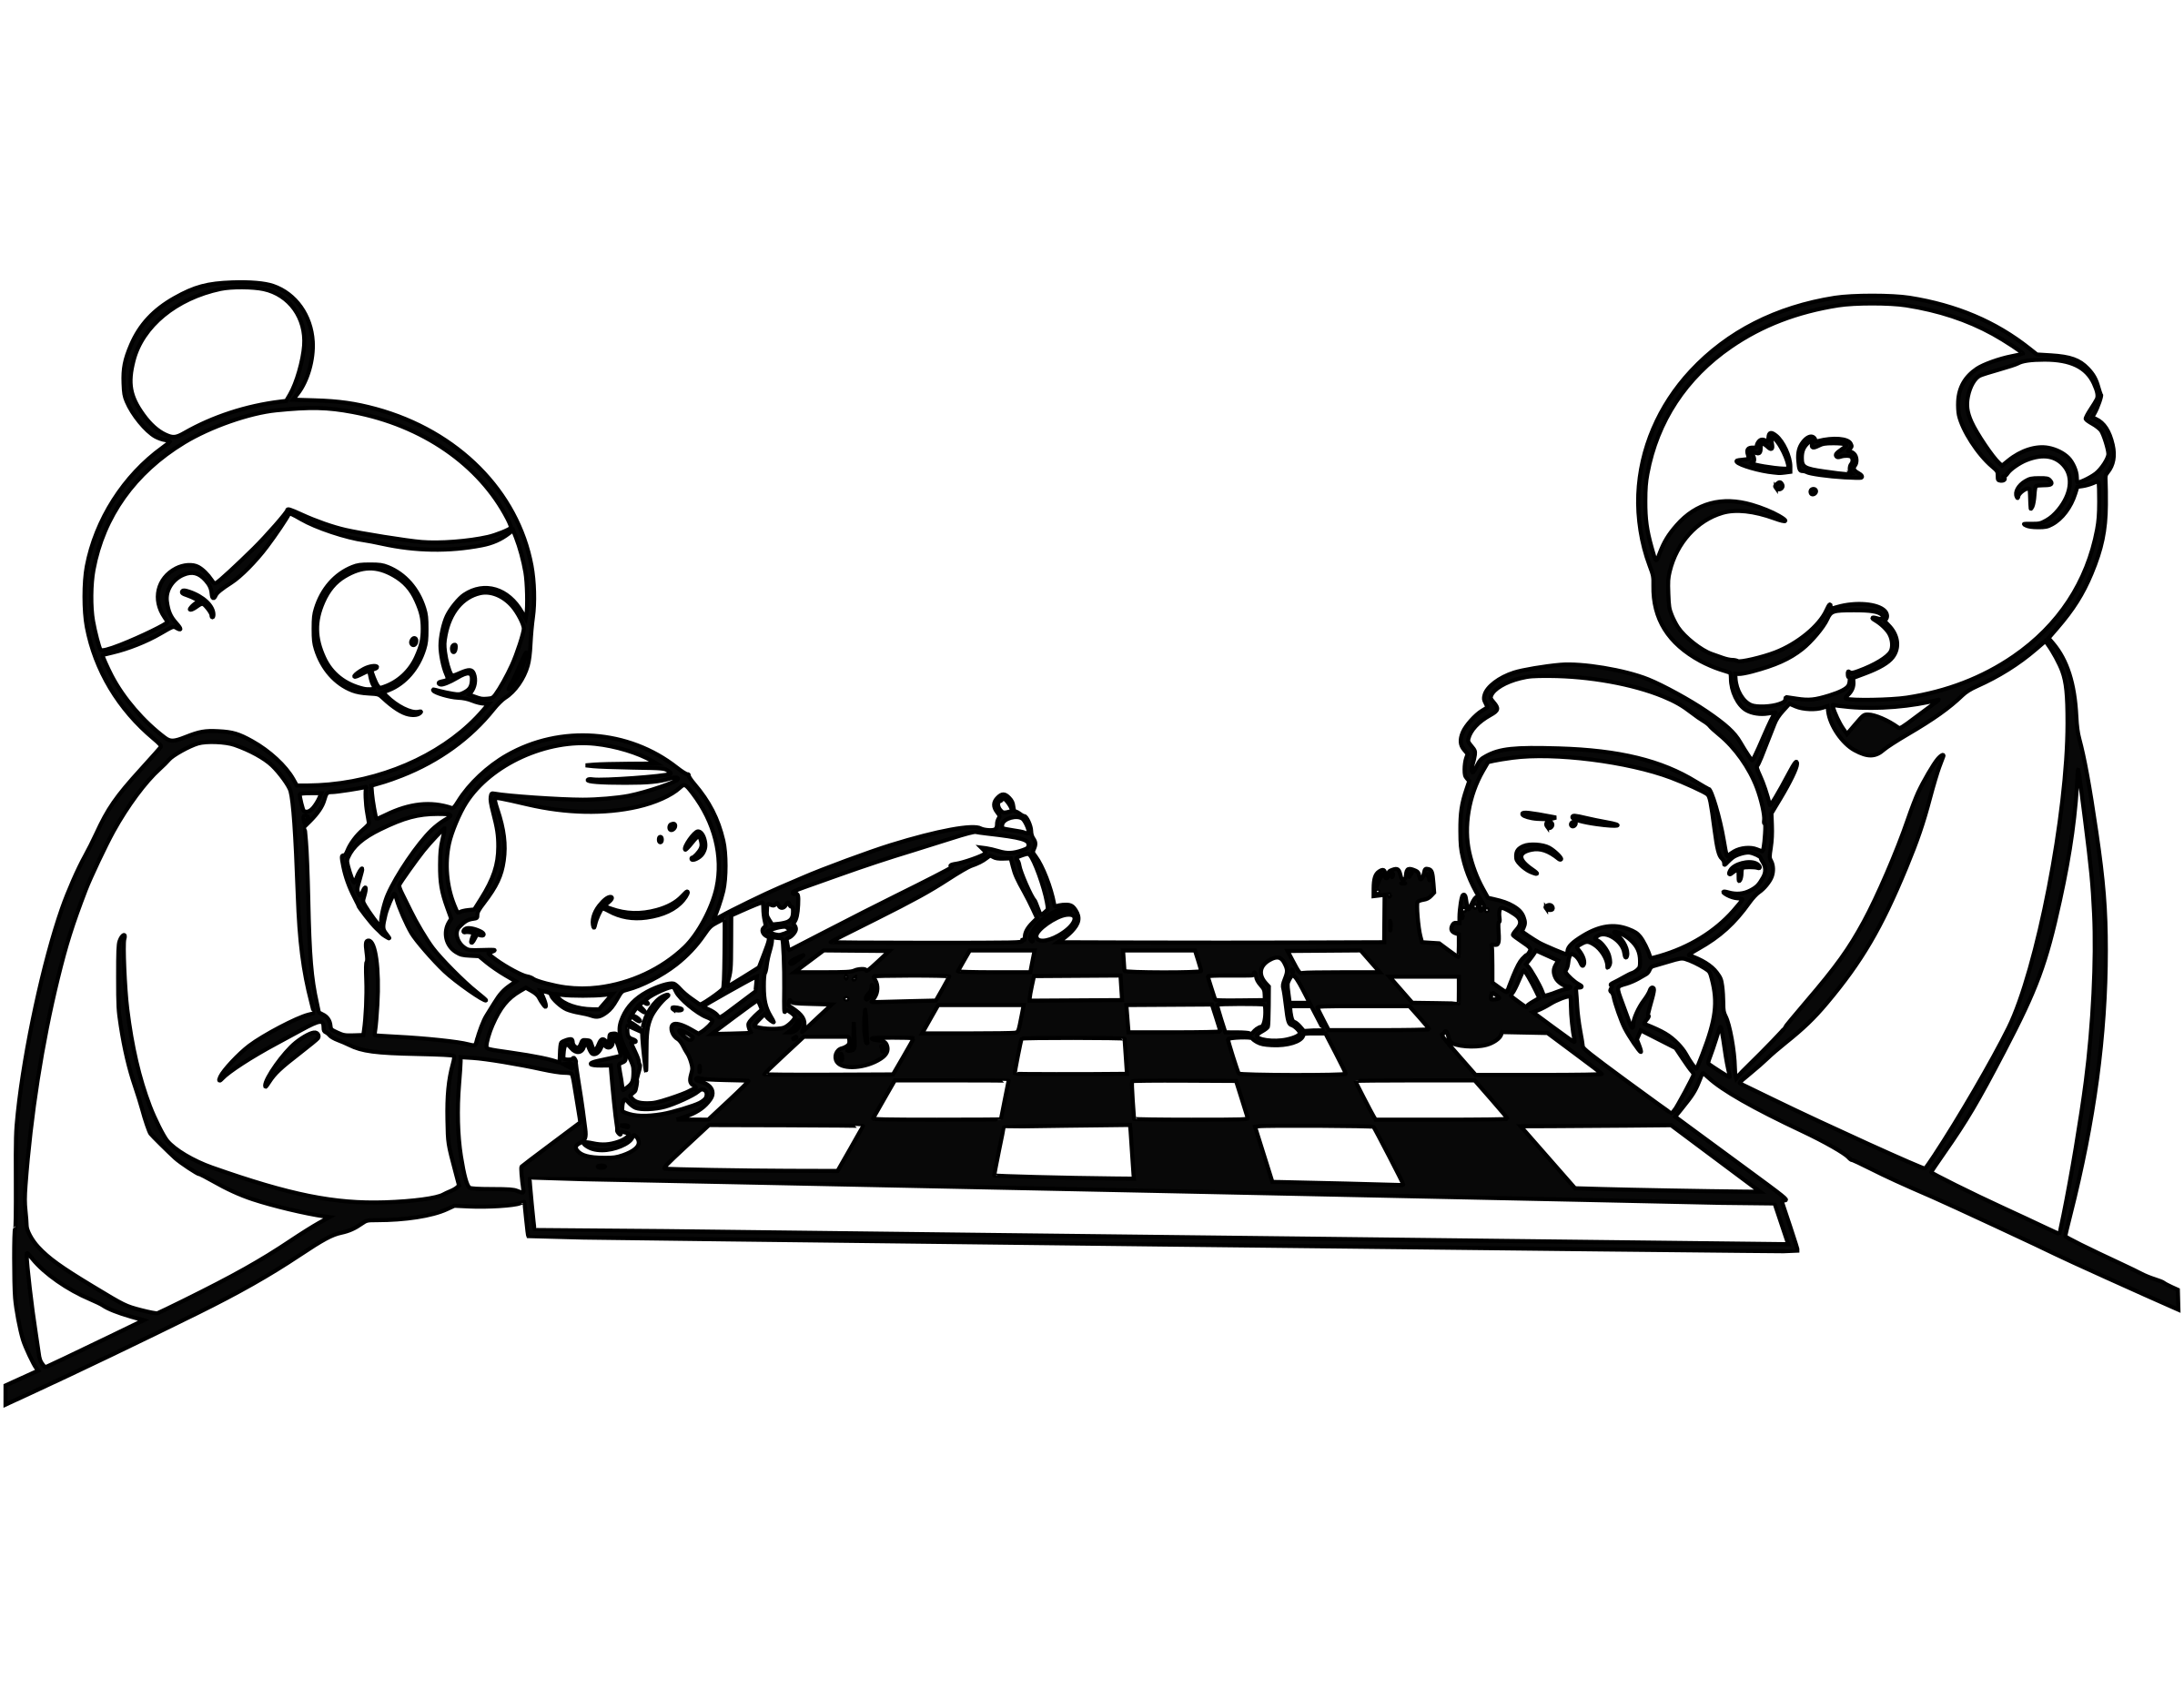 Chess coloring book  / Dibujo Ajedrez para colorear -11- by DG-RA